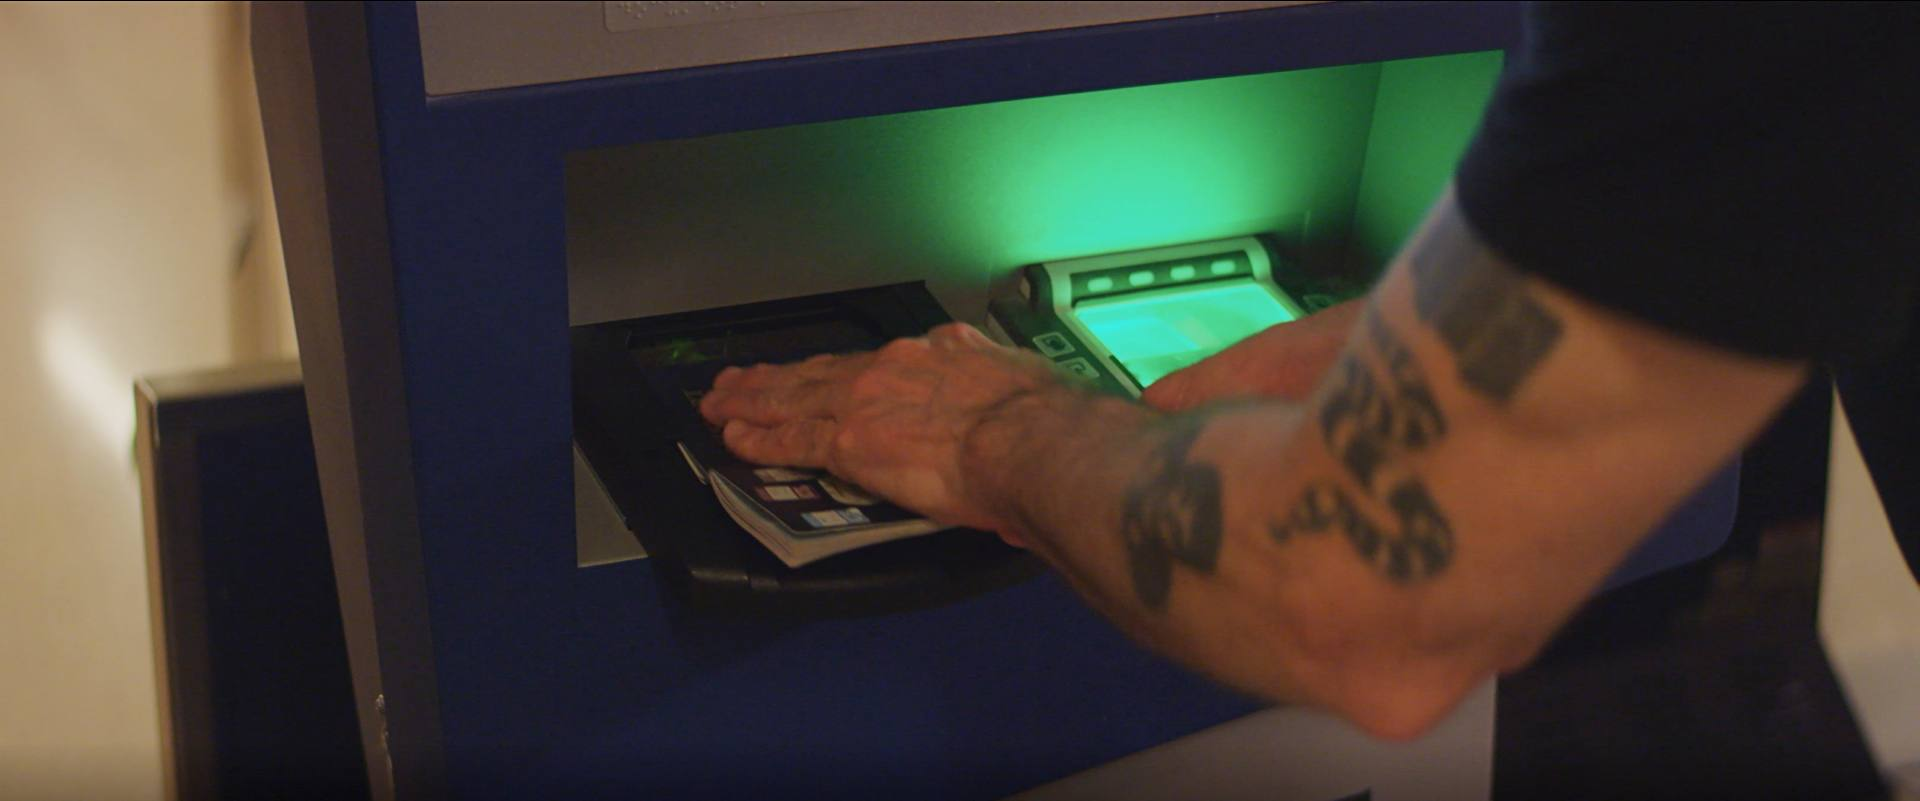 Henry Rollins uses the Global Entry Kiosk at Tom Bradley International in LAX